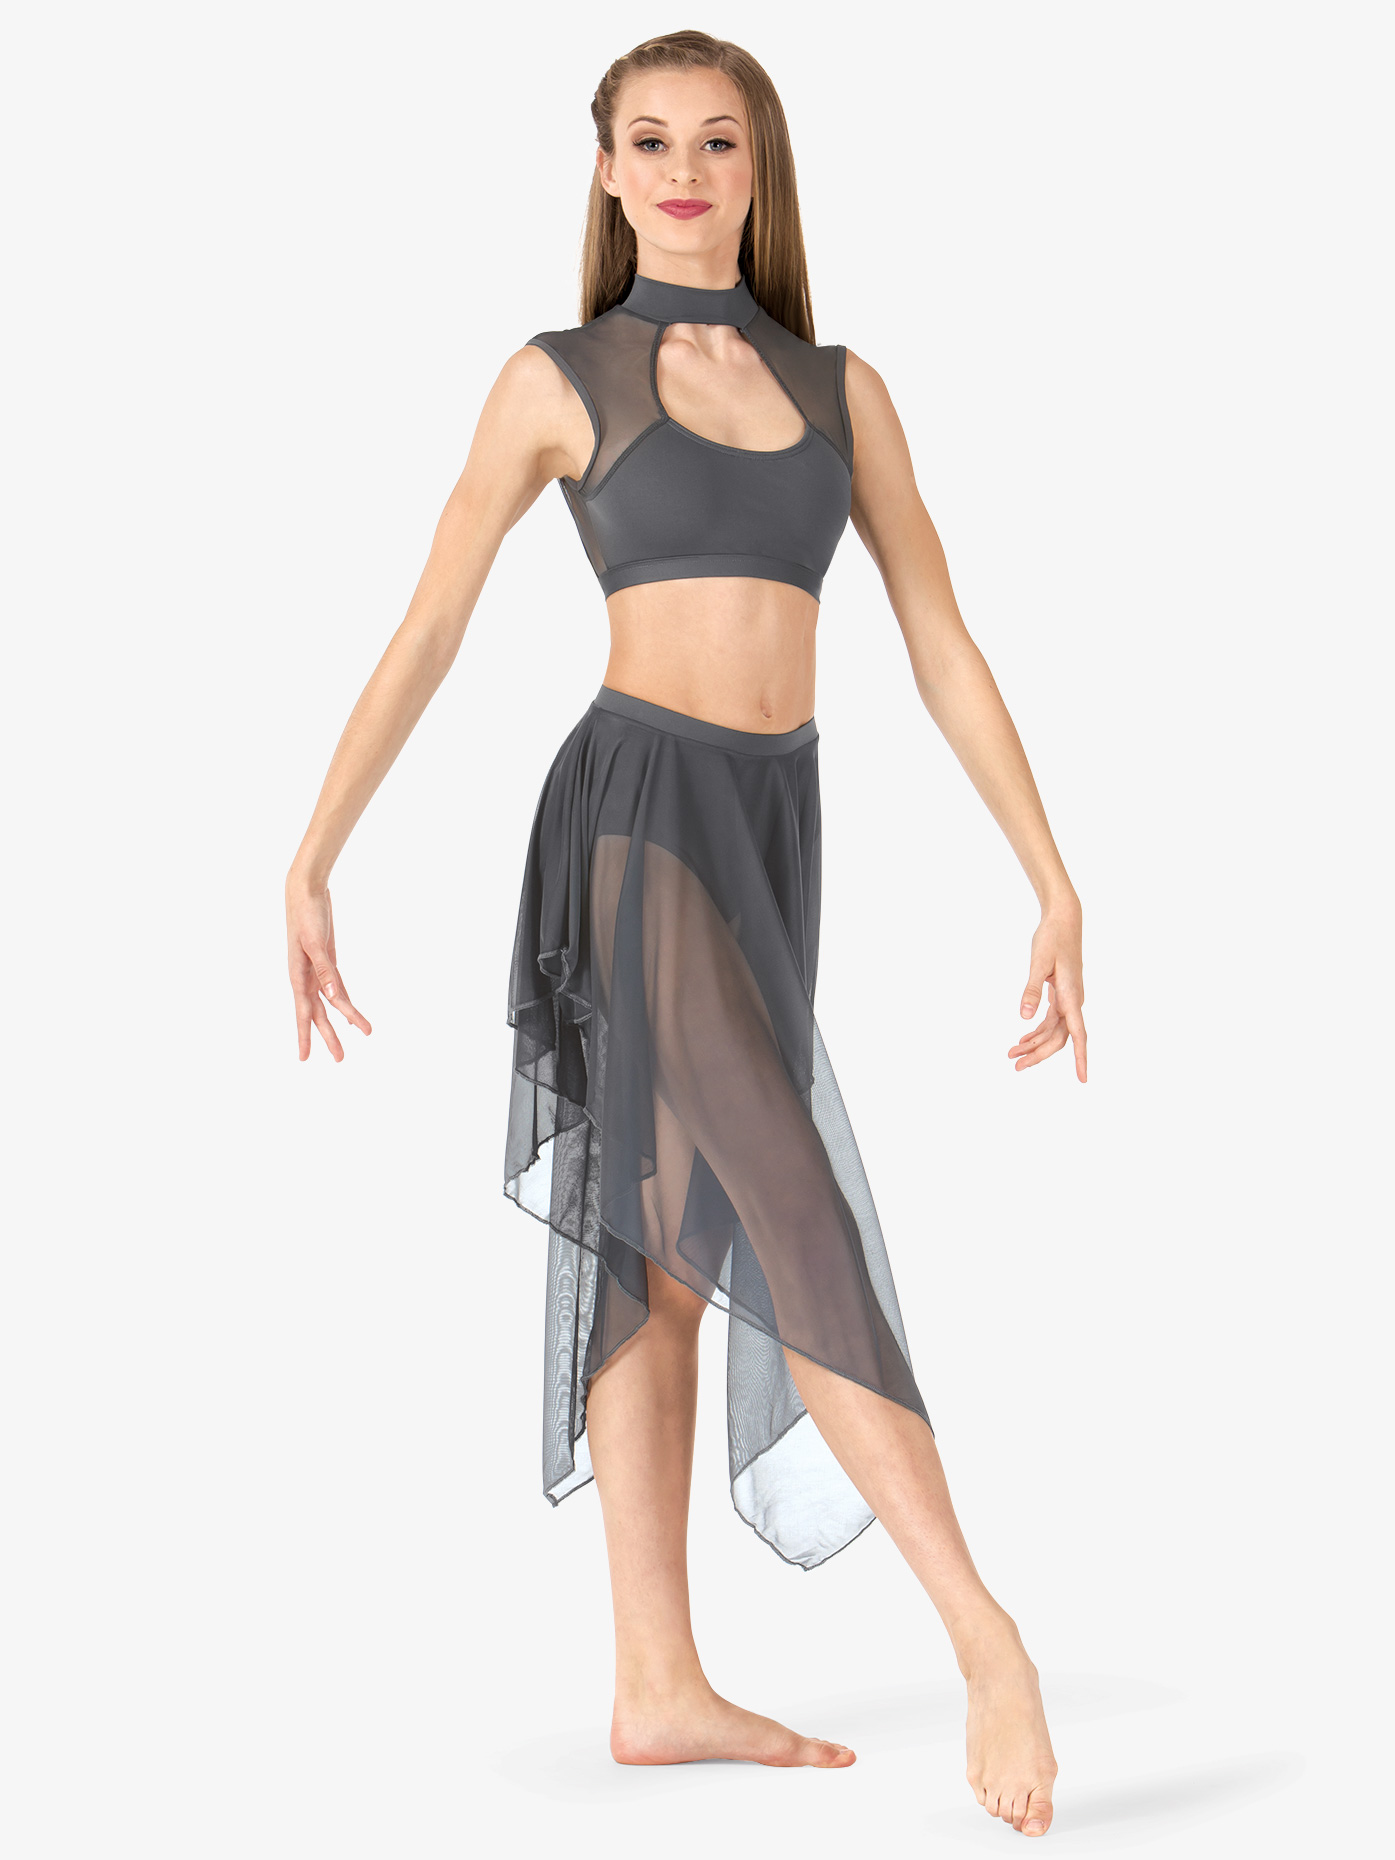 Body Wrappers Adult Convertible High-Low Dance Skirt BW9113